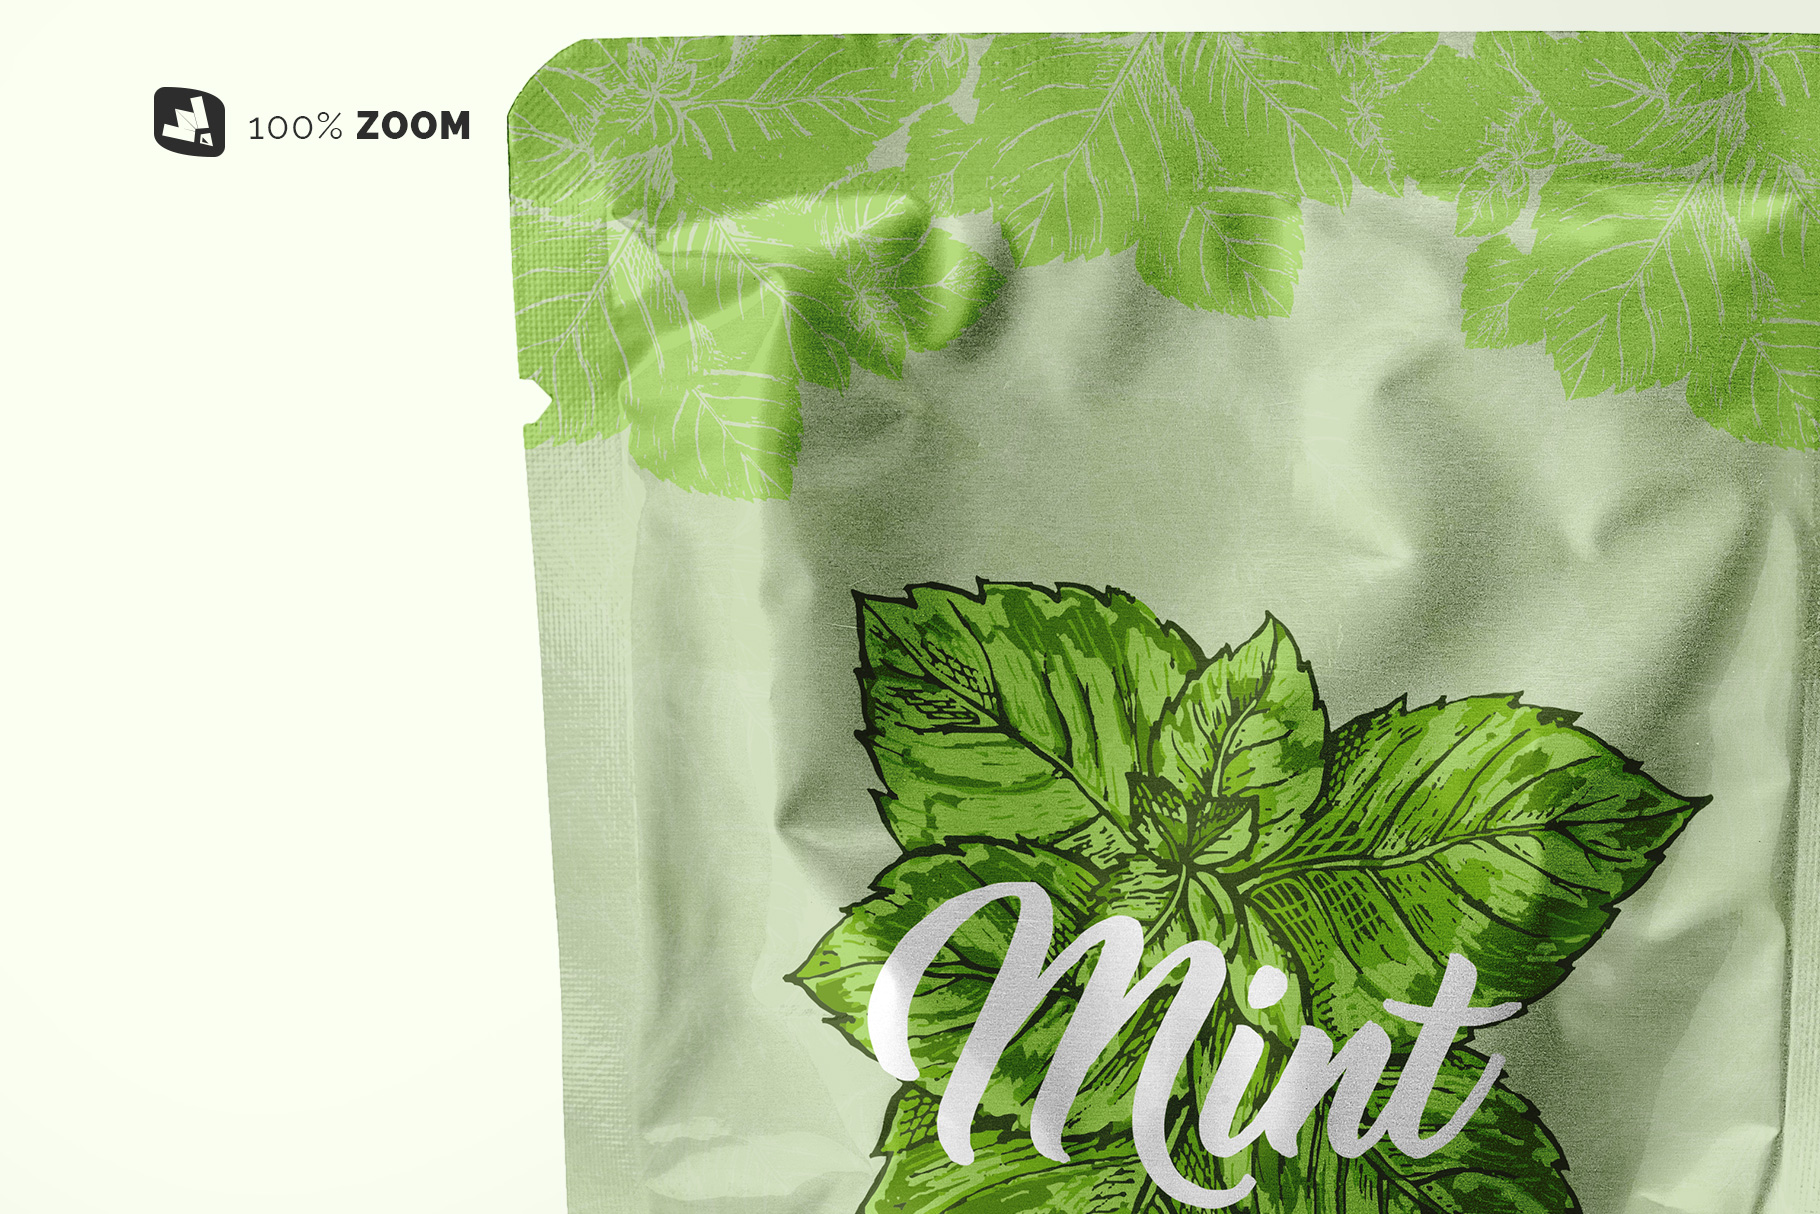 zoomed in image of the flexible foil pouch packaging mockup